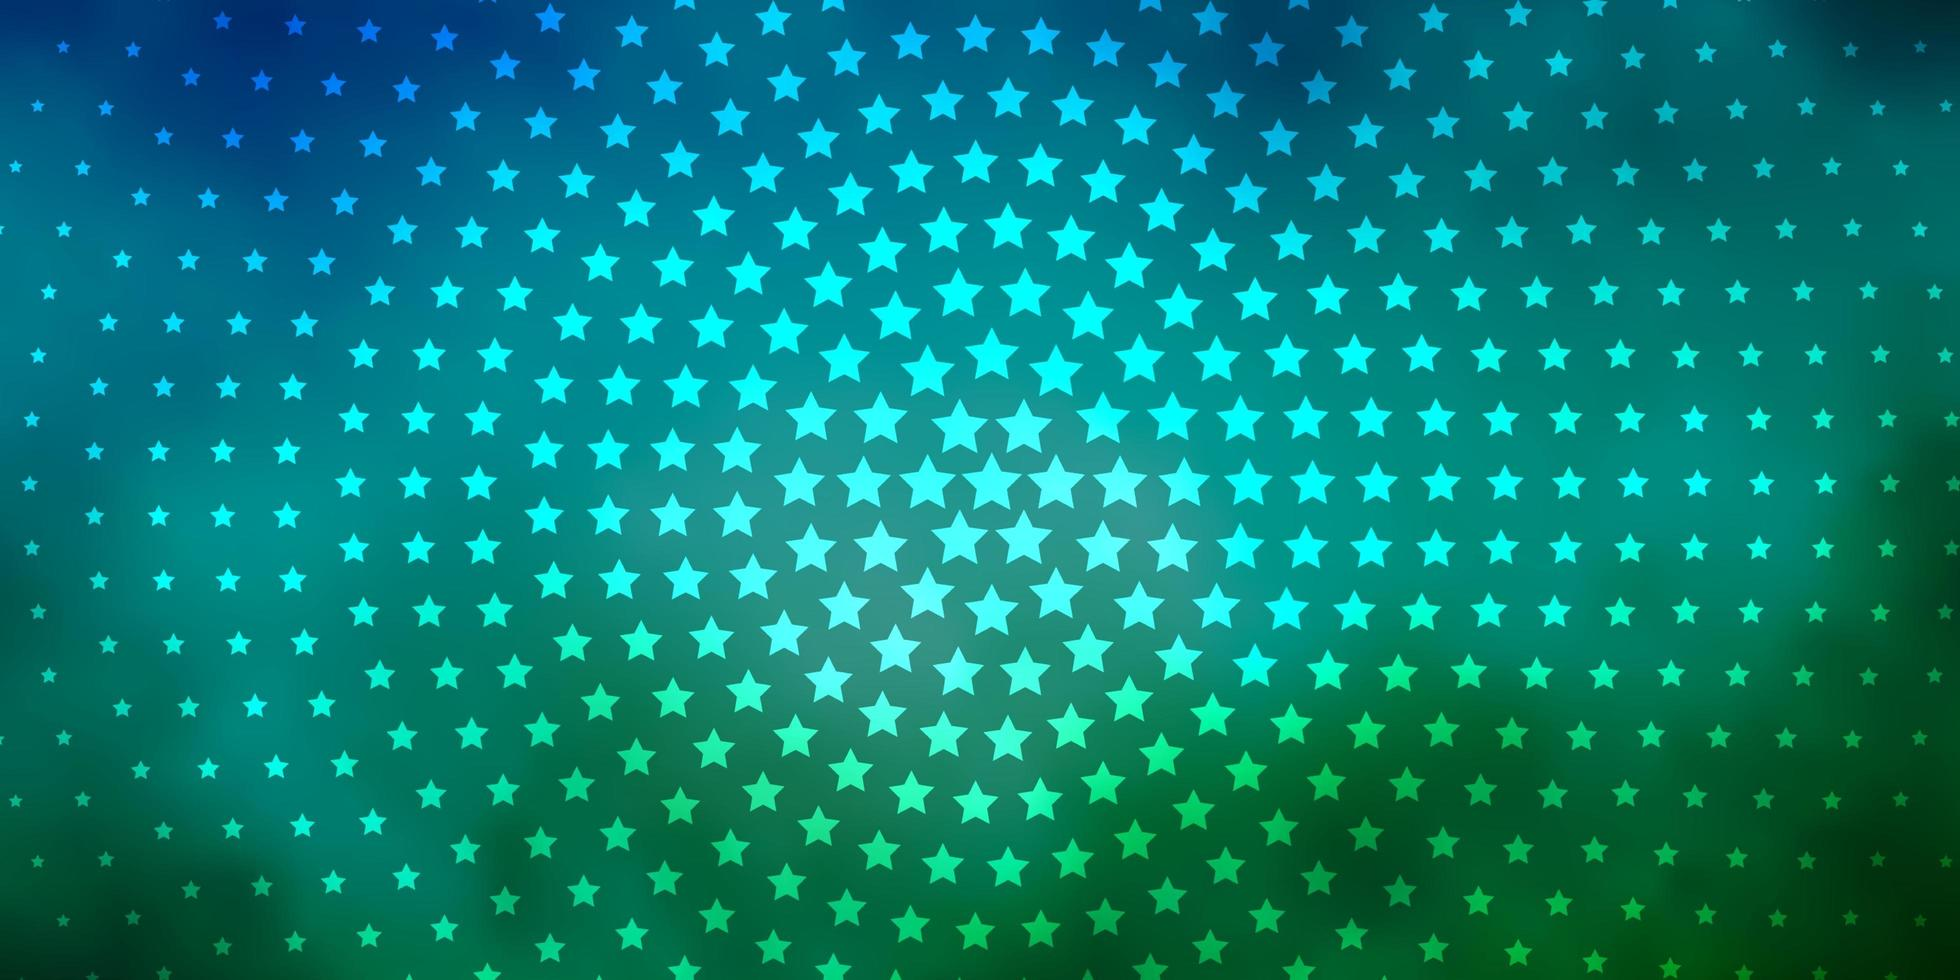 Blue and green background with colorful stars vector